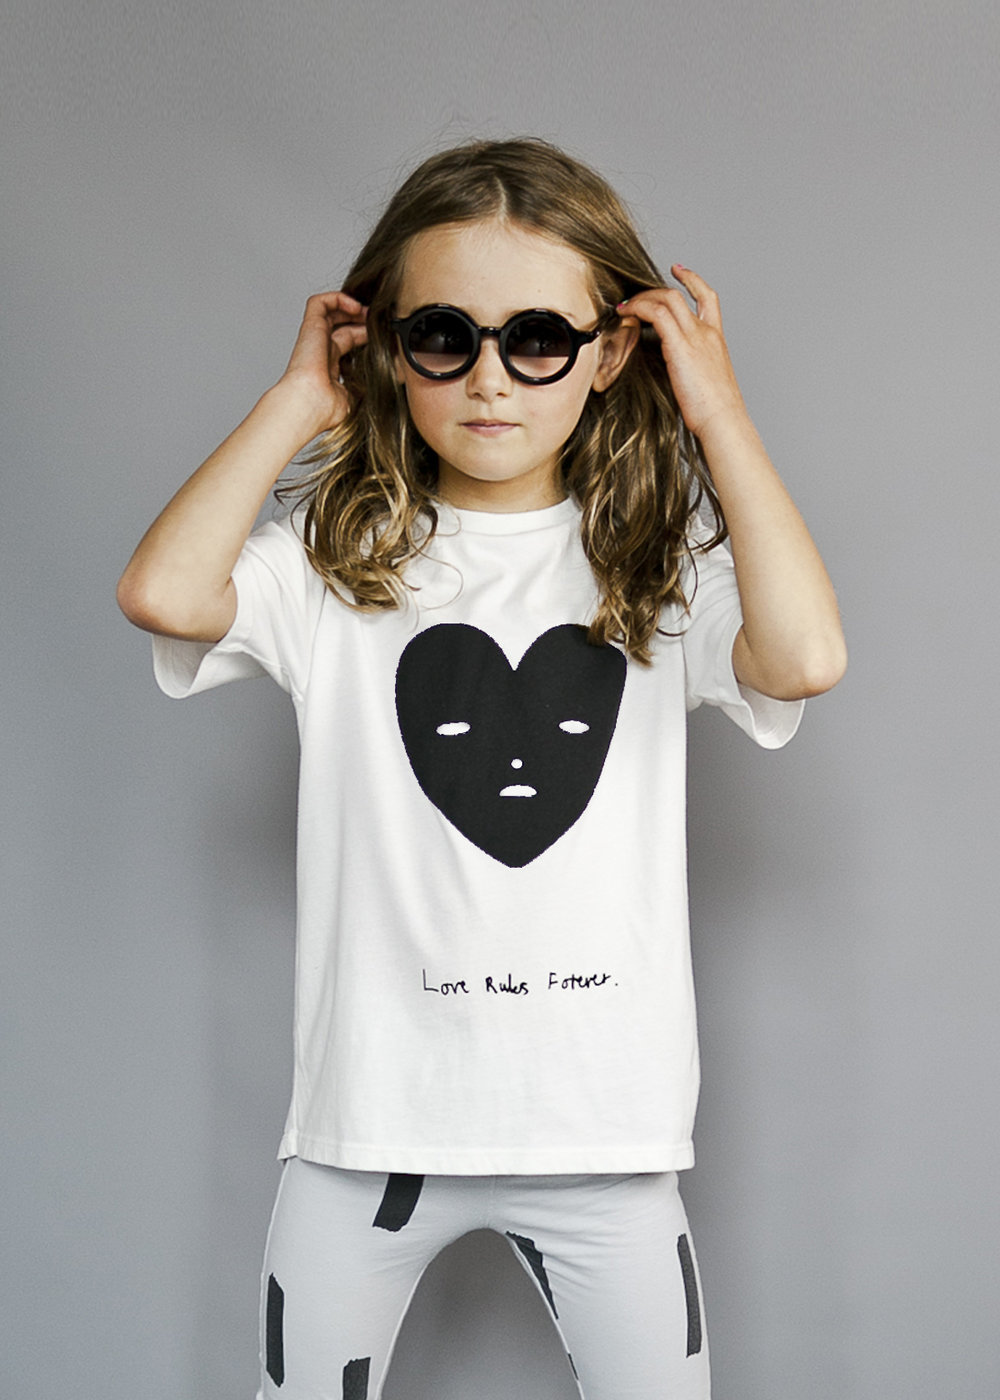 short sleeve fin t shirt vanilla heartface.jpg